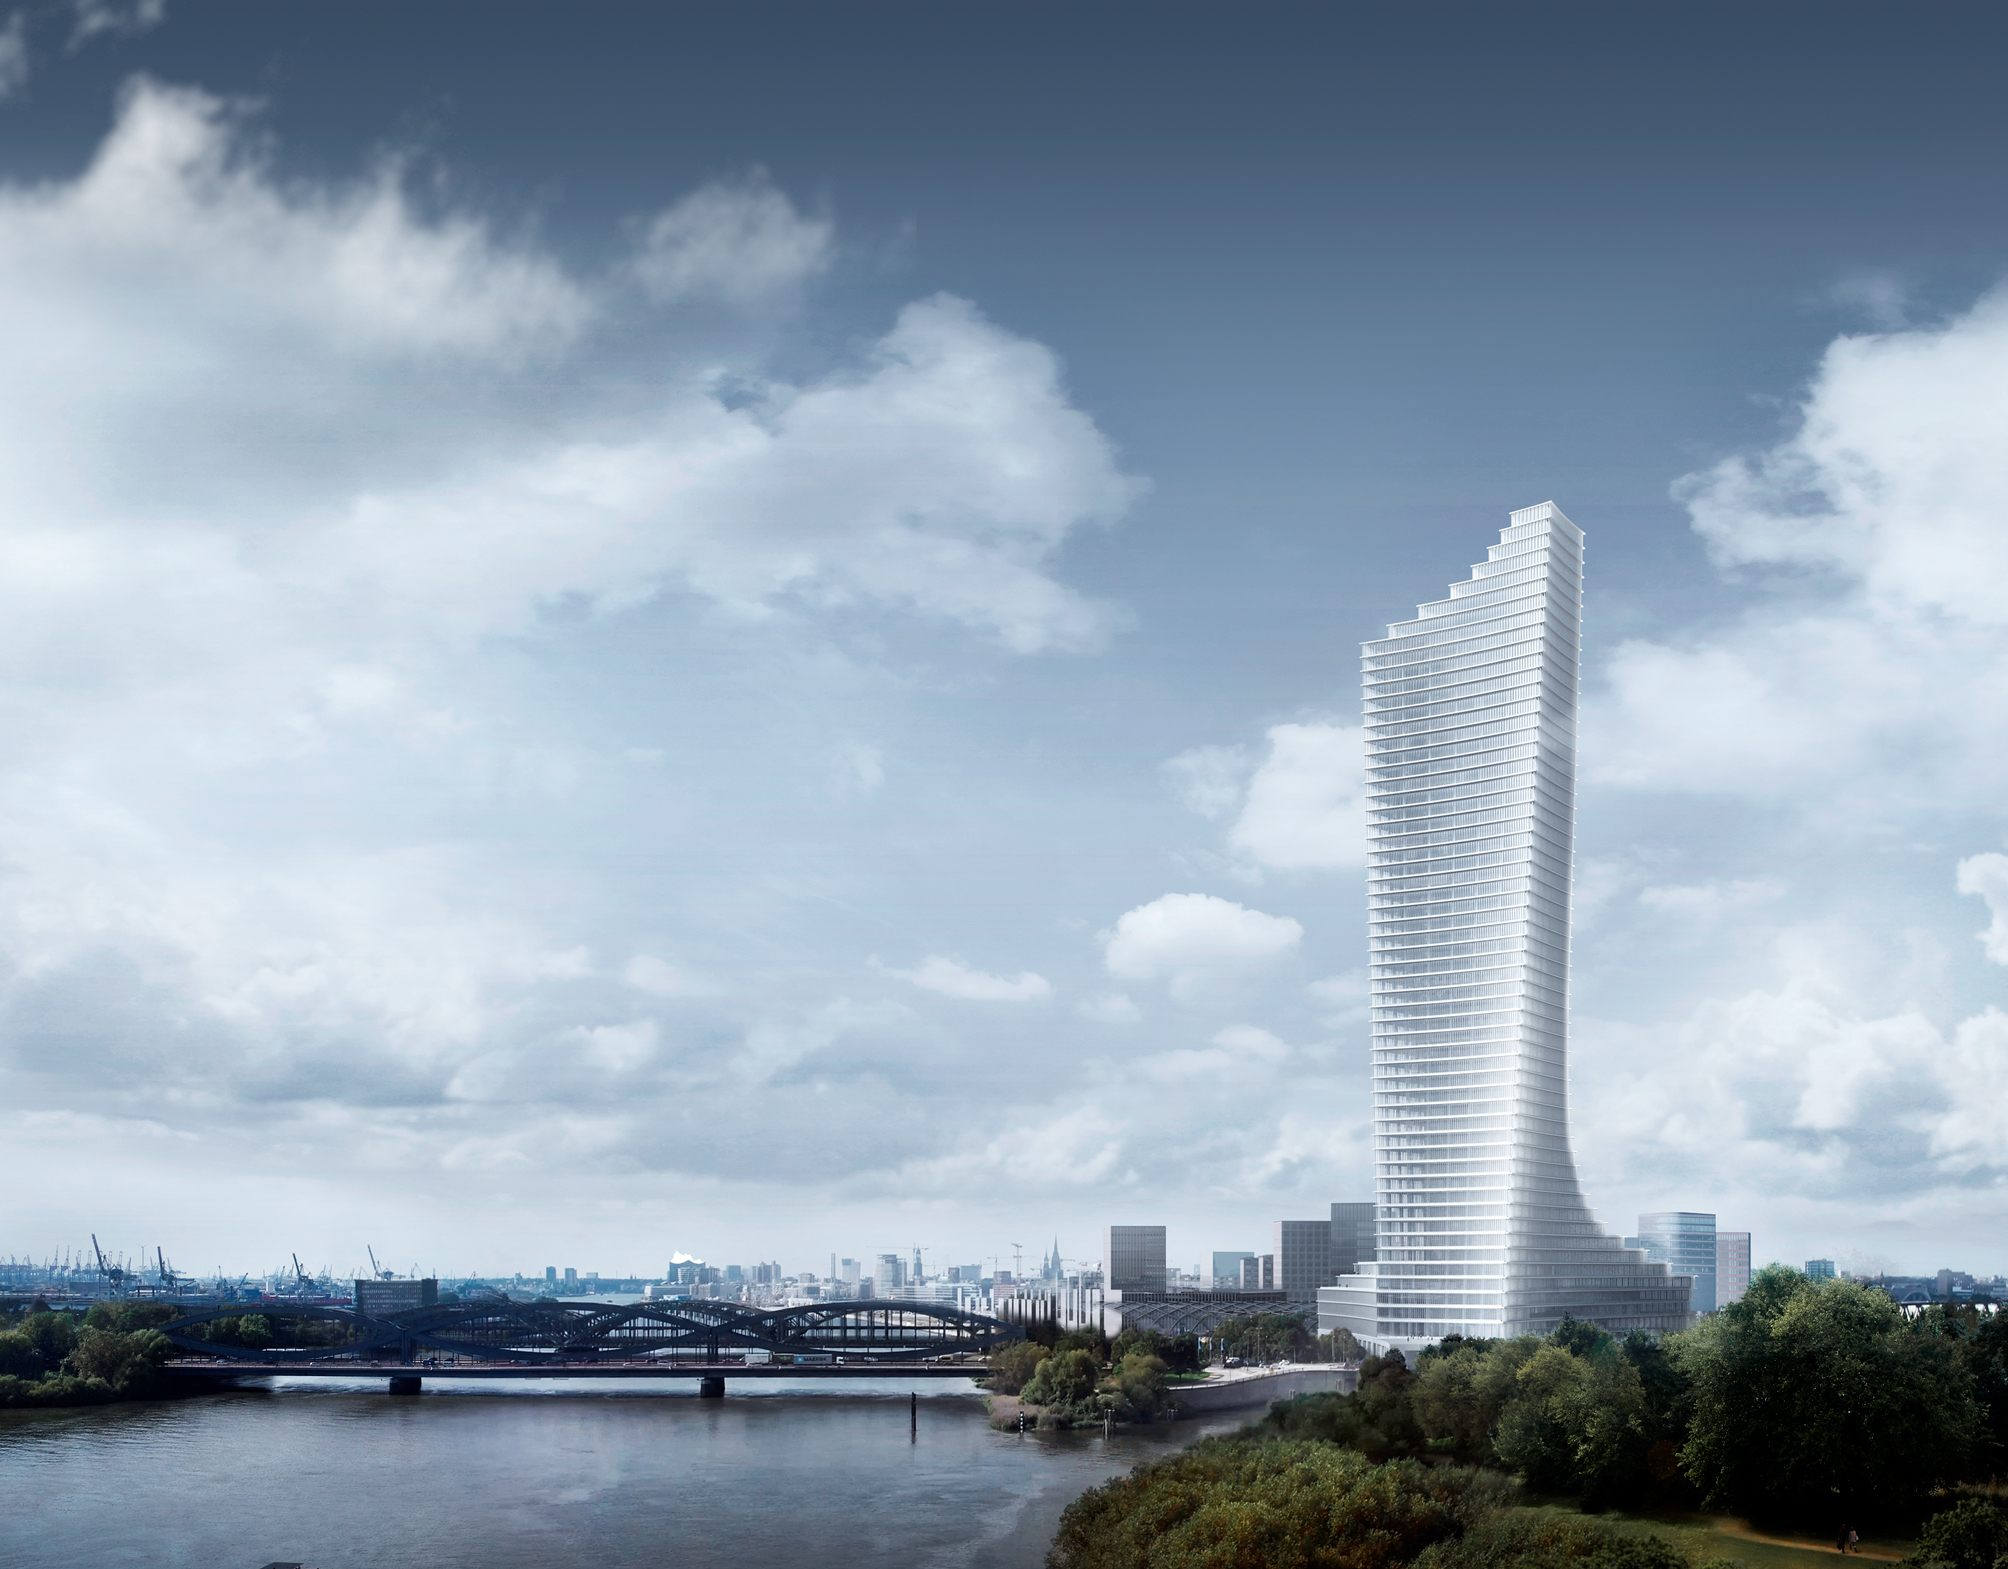 The Elbtower, as seen from the Elbpark. Copyright: SIGNA Chipperfield for HafenCity Hamburg GmbH.